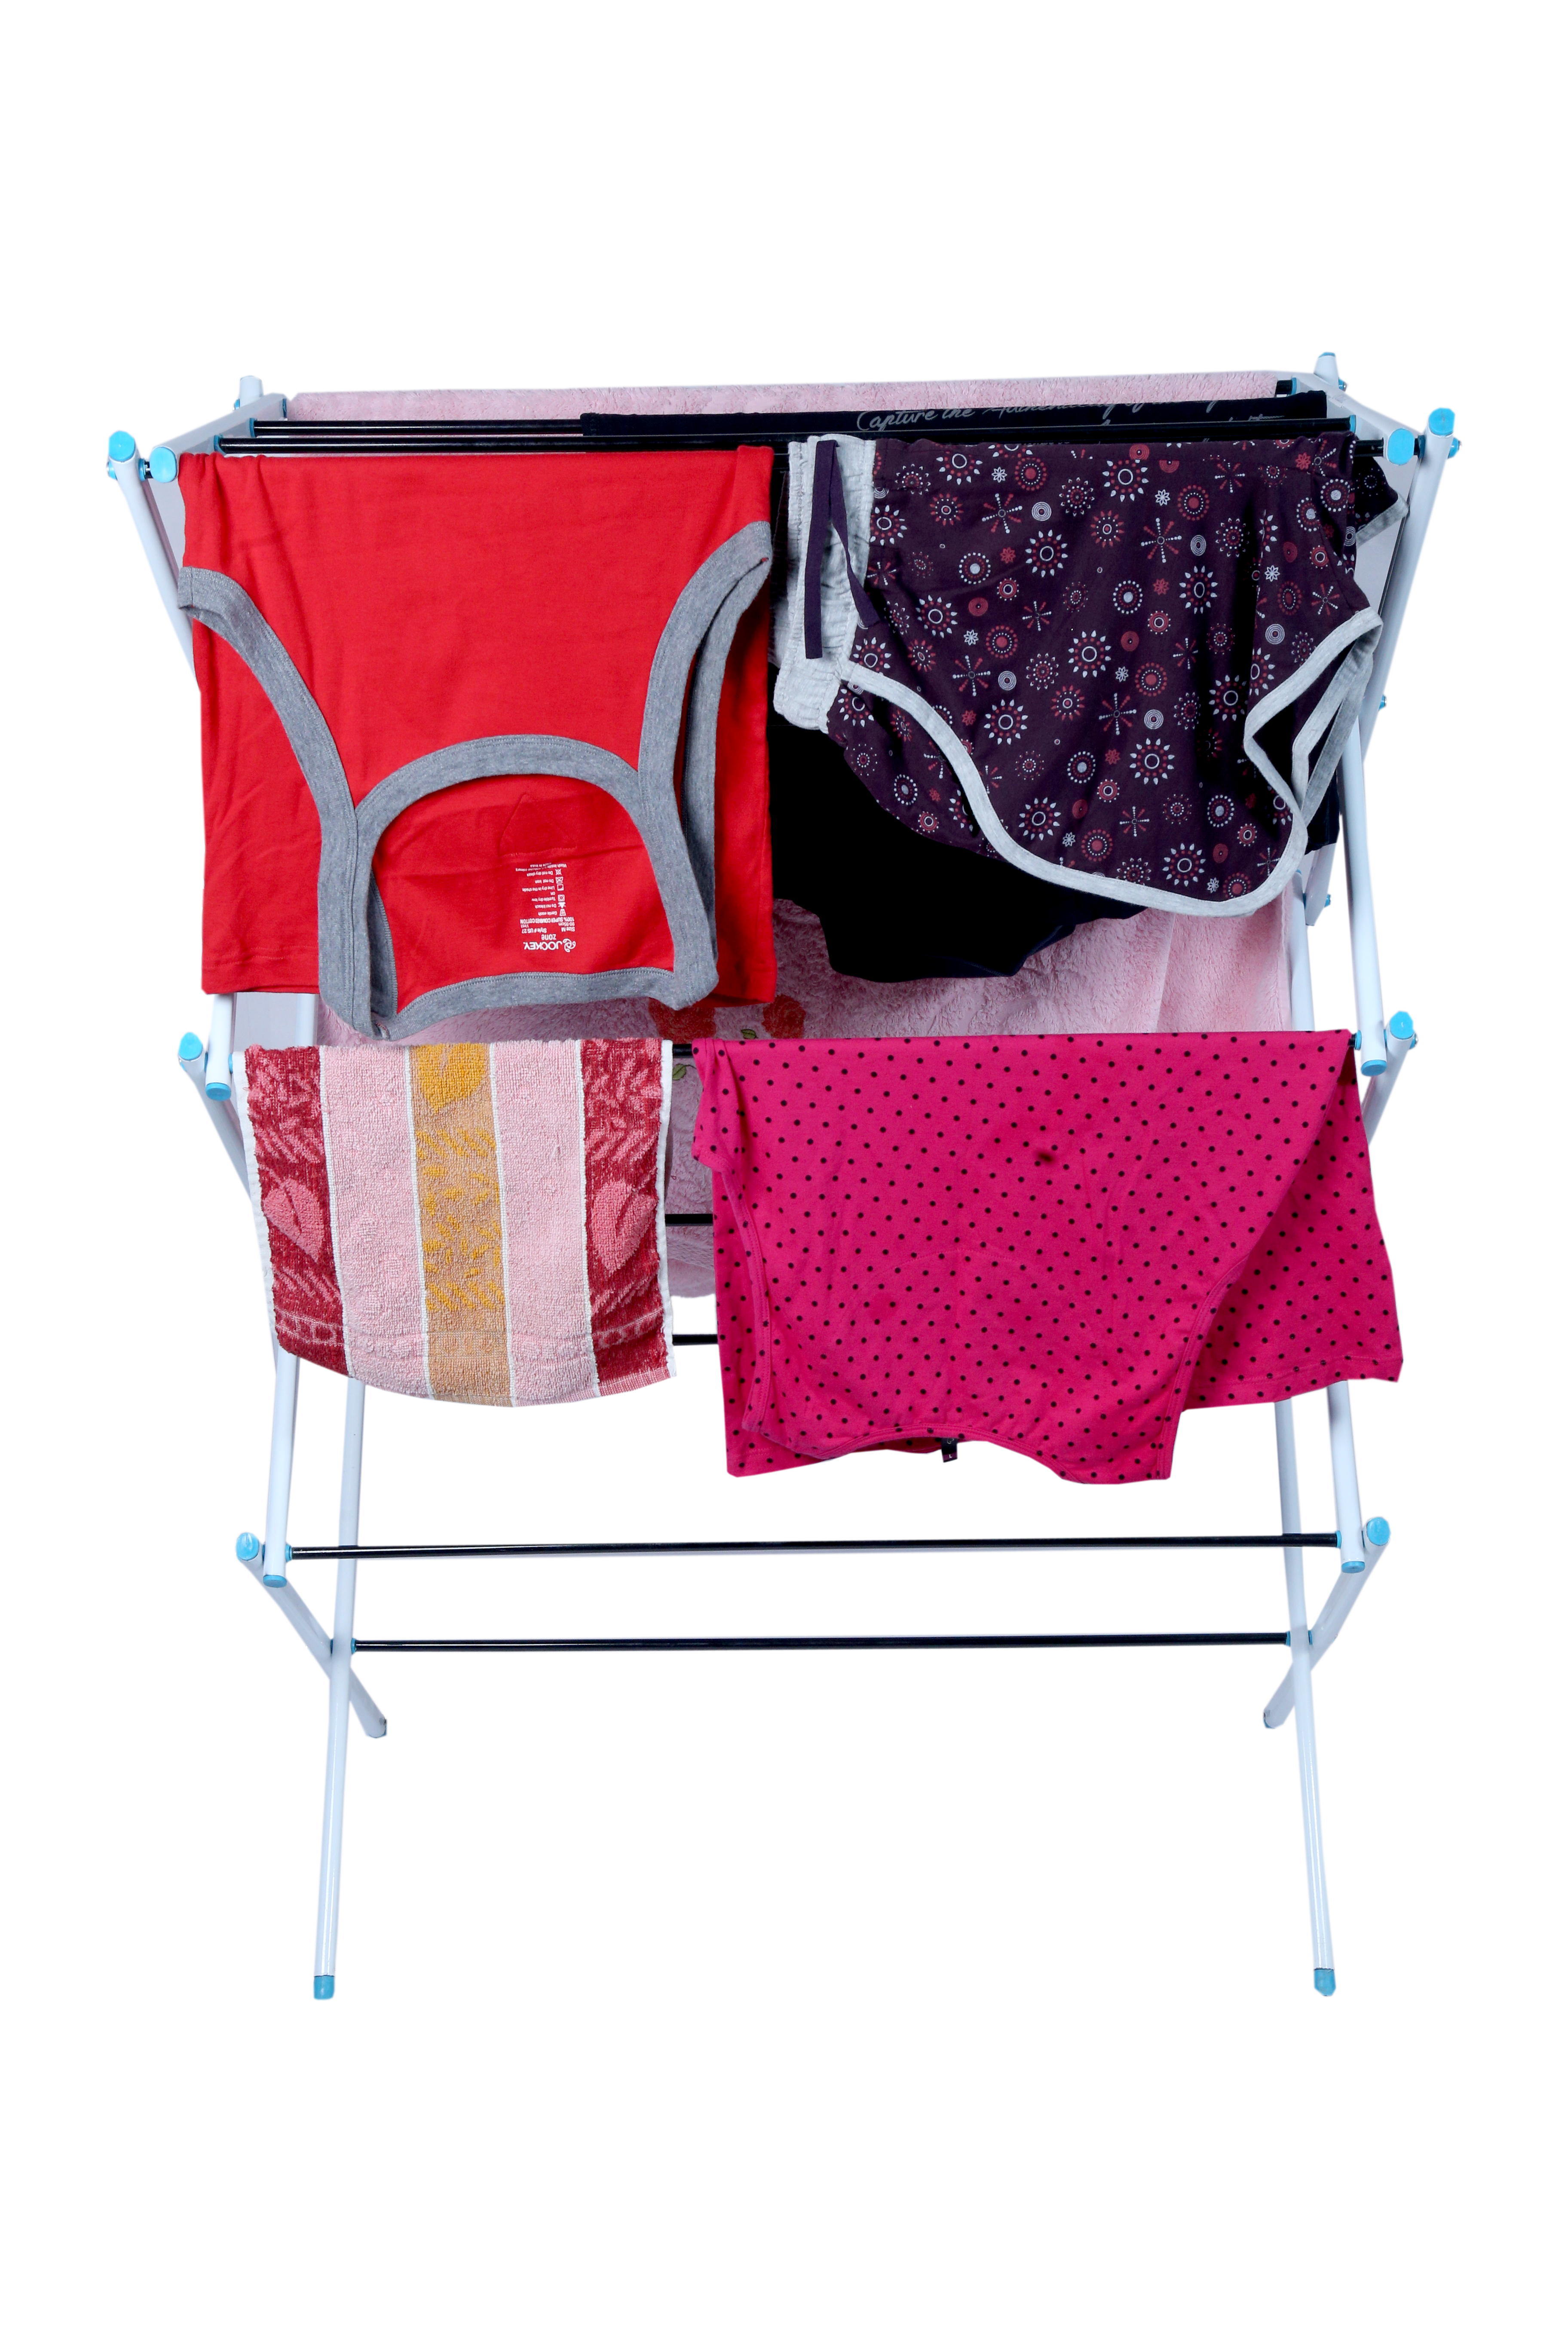 Polo cloth drying stand for indoor and outdoor applications